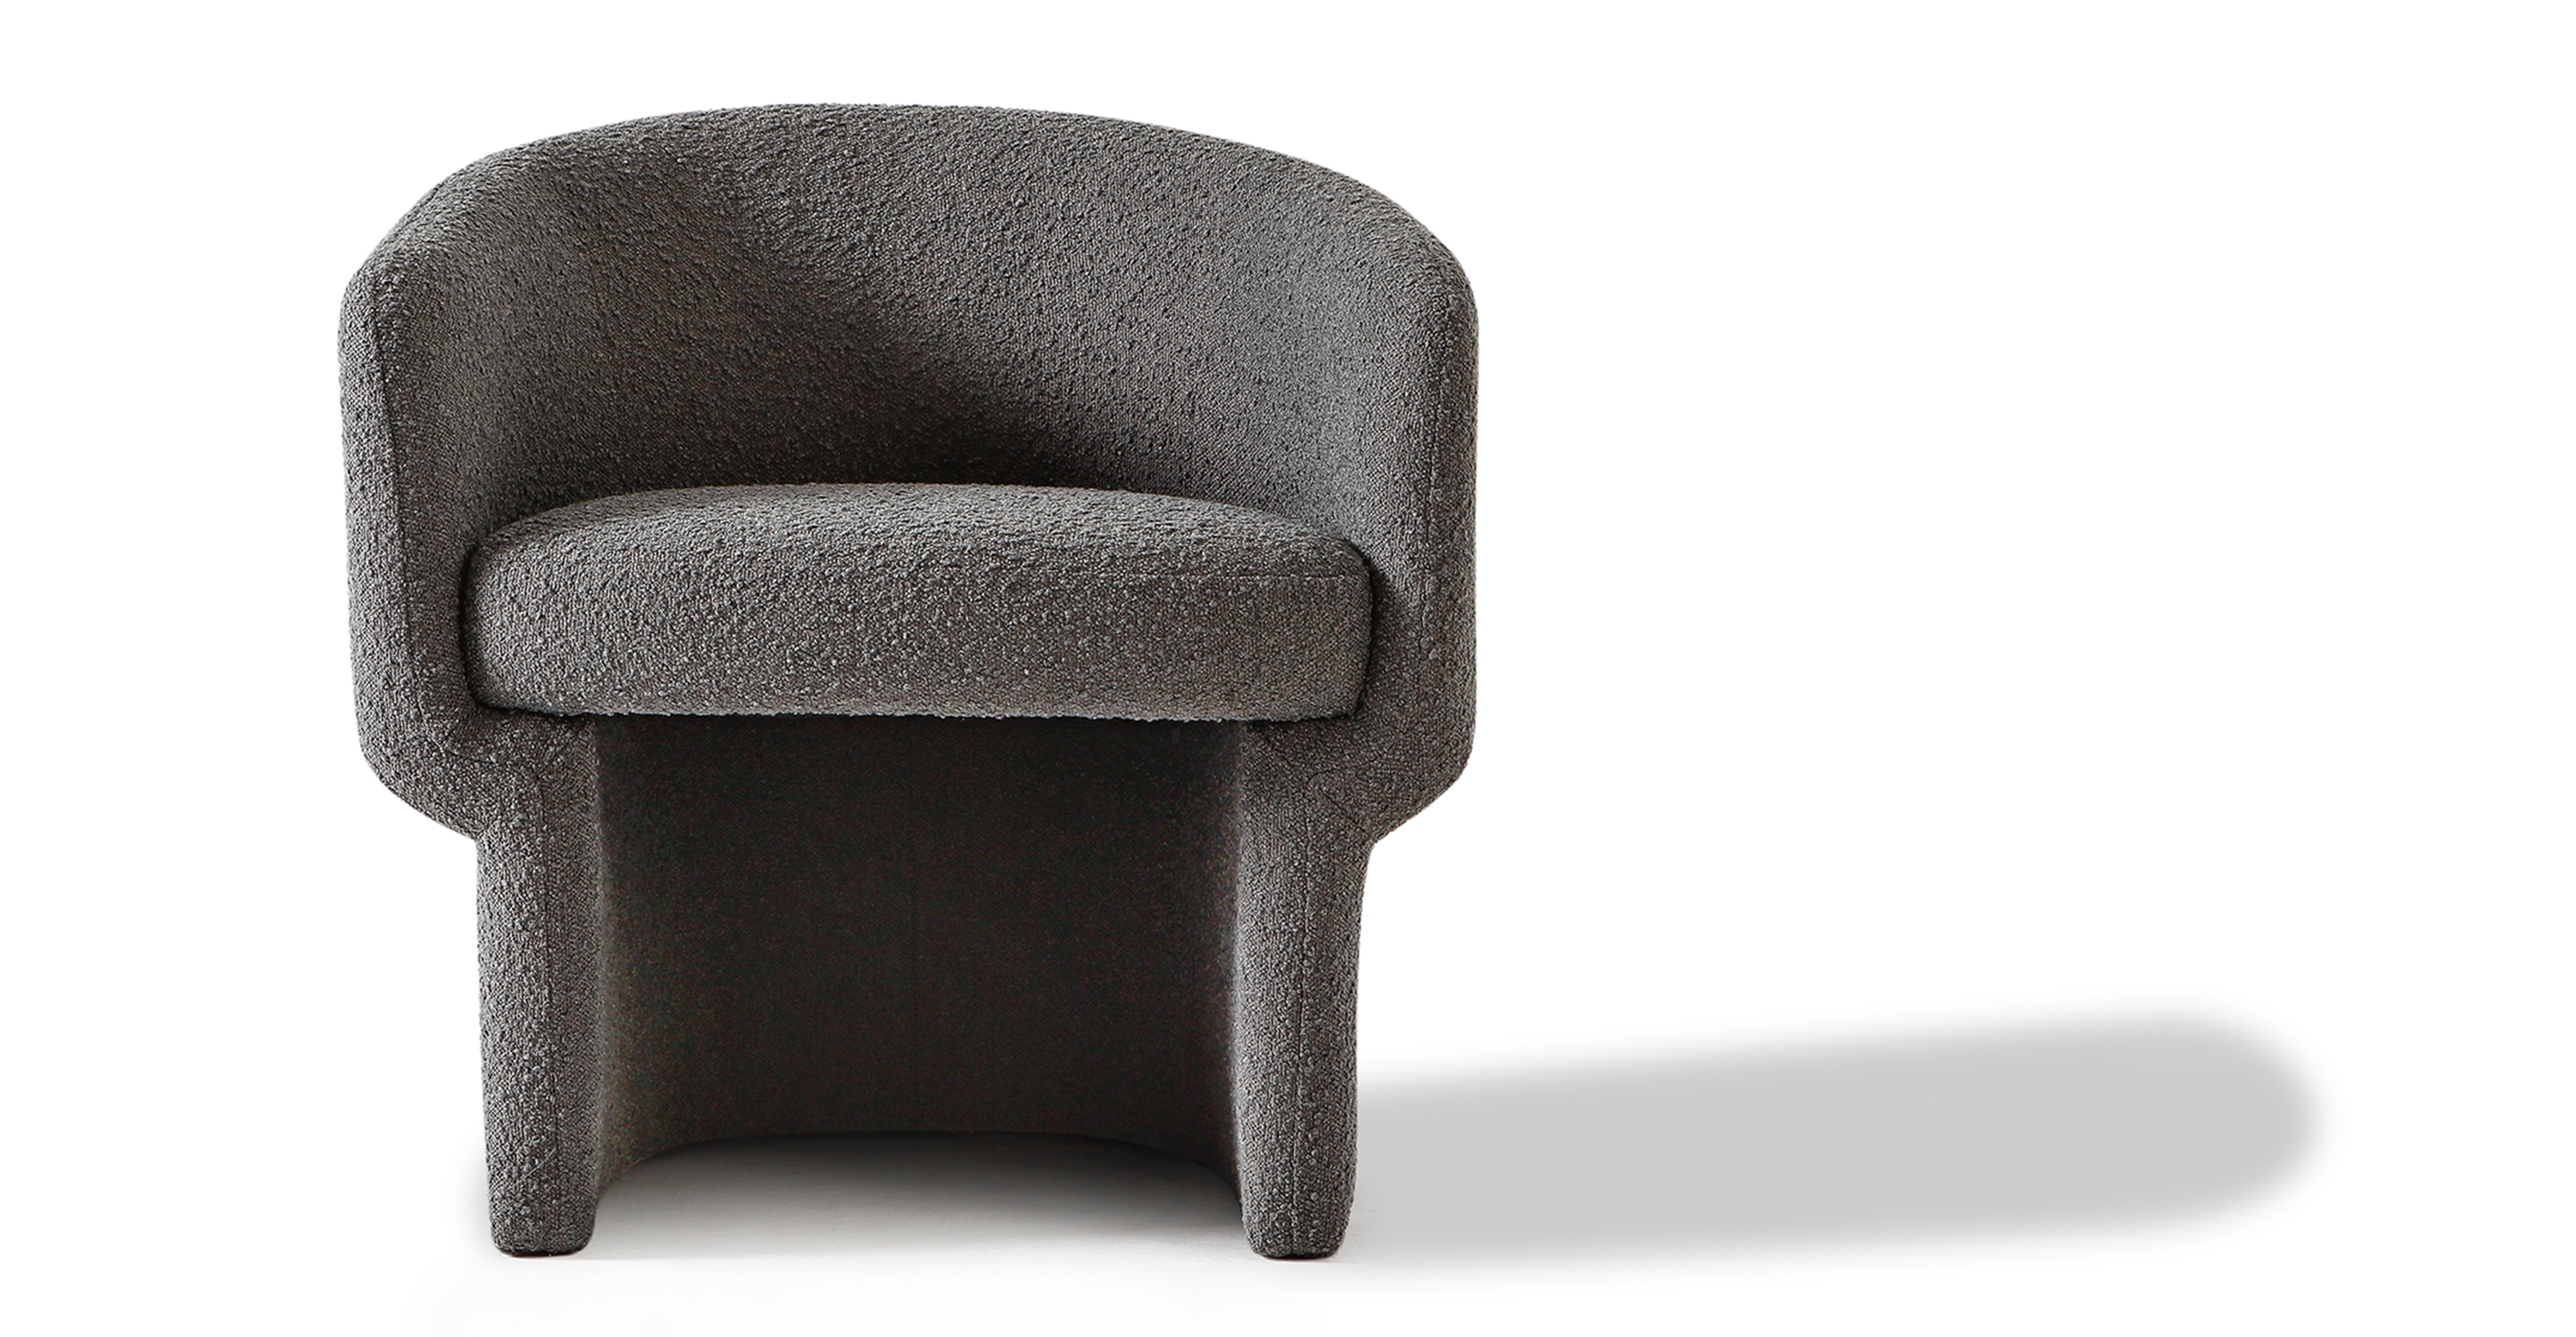 "Ovie 27"" Fabric Chair, Gris Boucle"